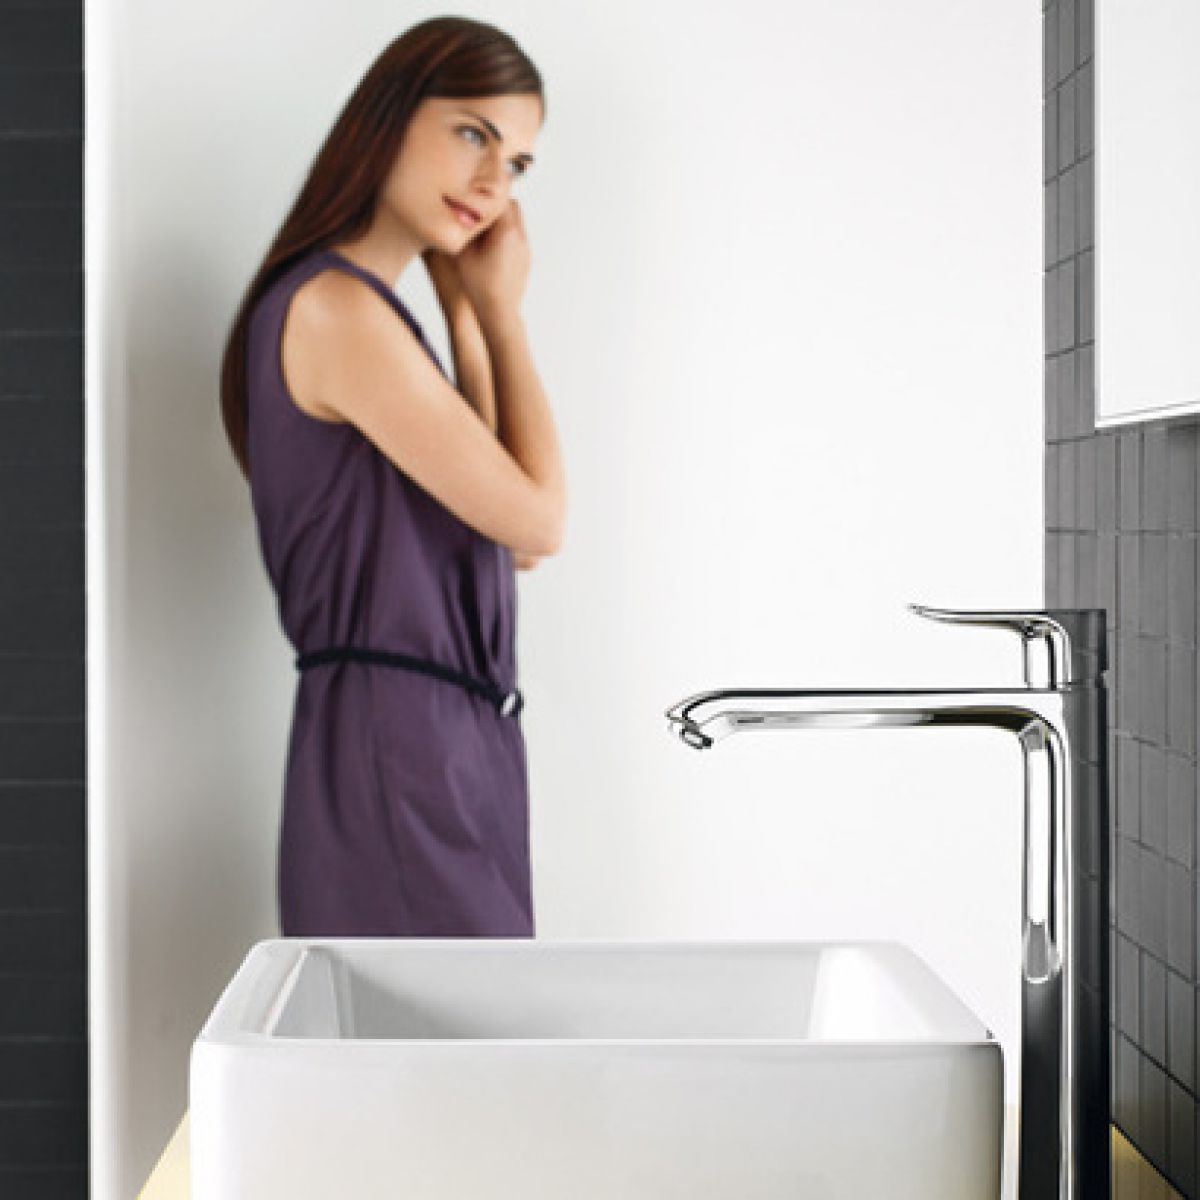 Hansgrohe Metris 260 Taller Basin Mixer Tap Uk Bathrooms